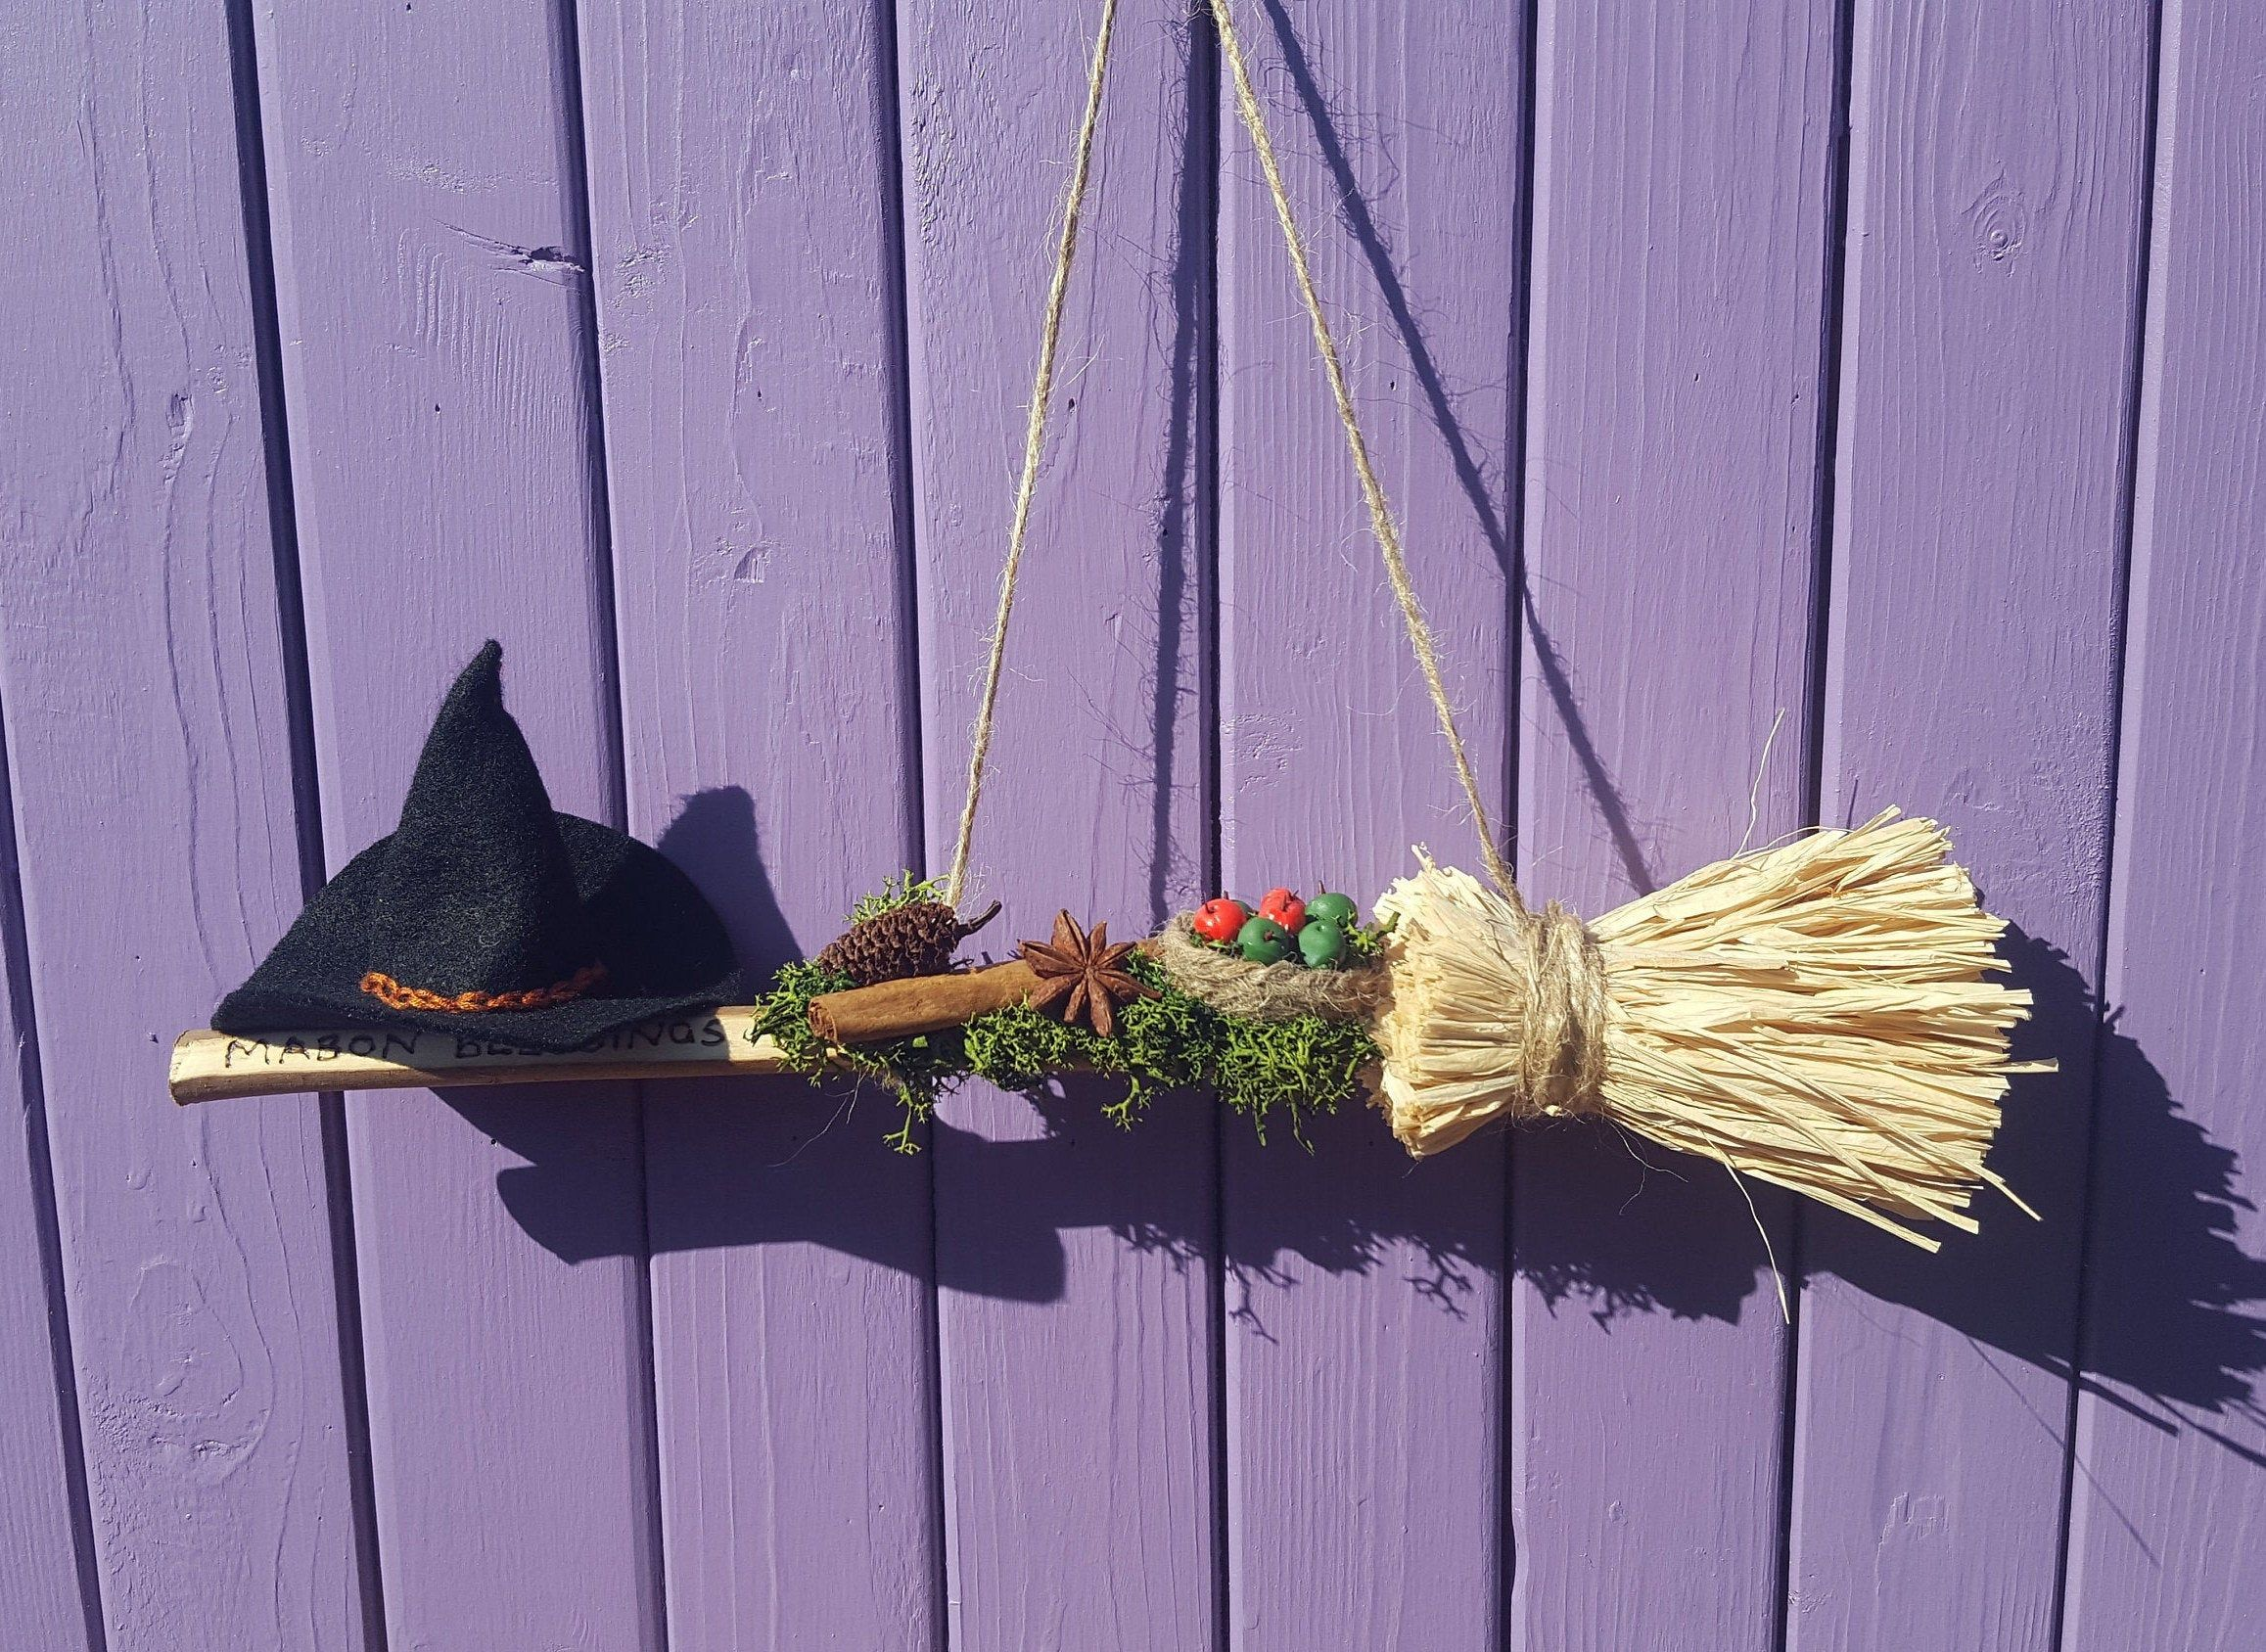 Hanging Mabon Decor, Miniature Broomstick, Autumn Blessings, Autumnal Equinox, Witches Besom Broom, Cinnamon Stick, Harvest Apple Basket #autumnalequinox